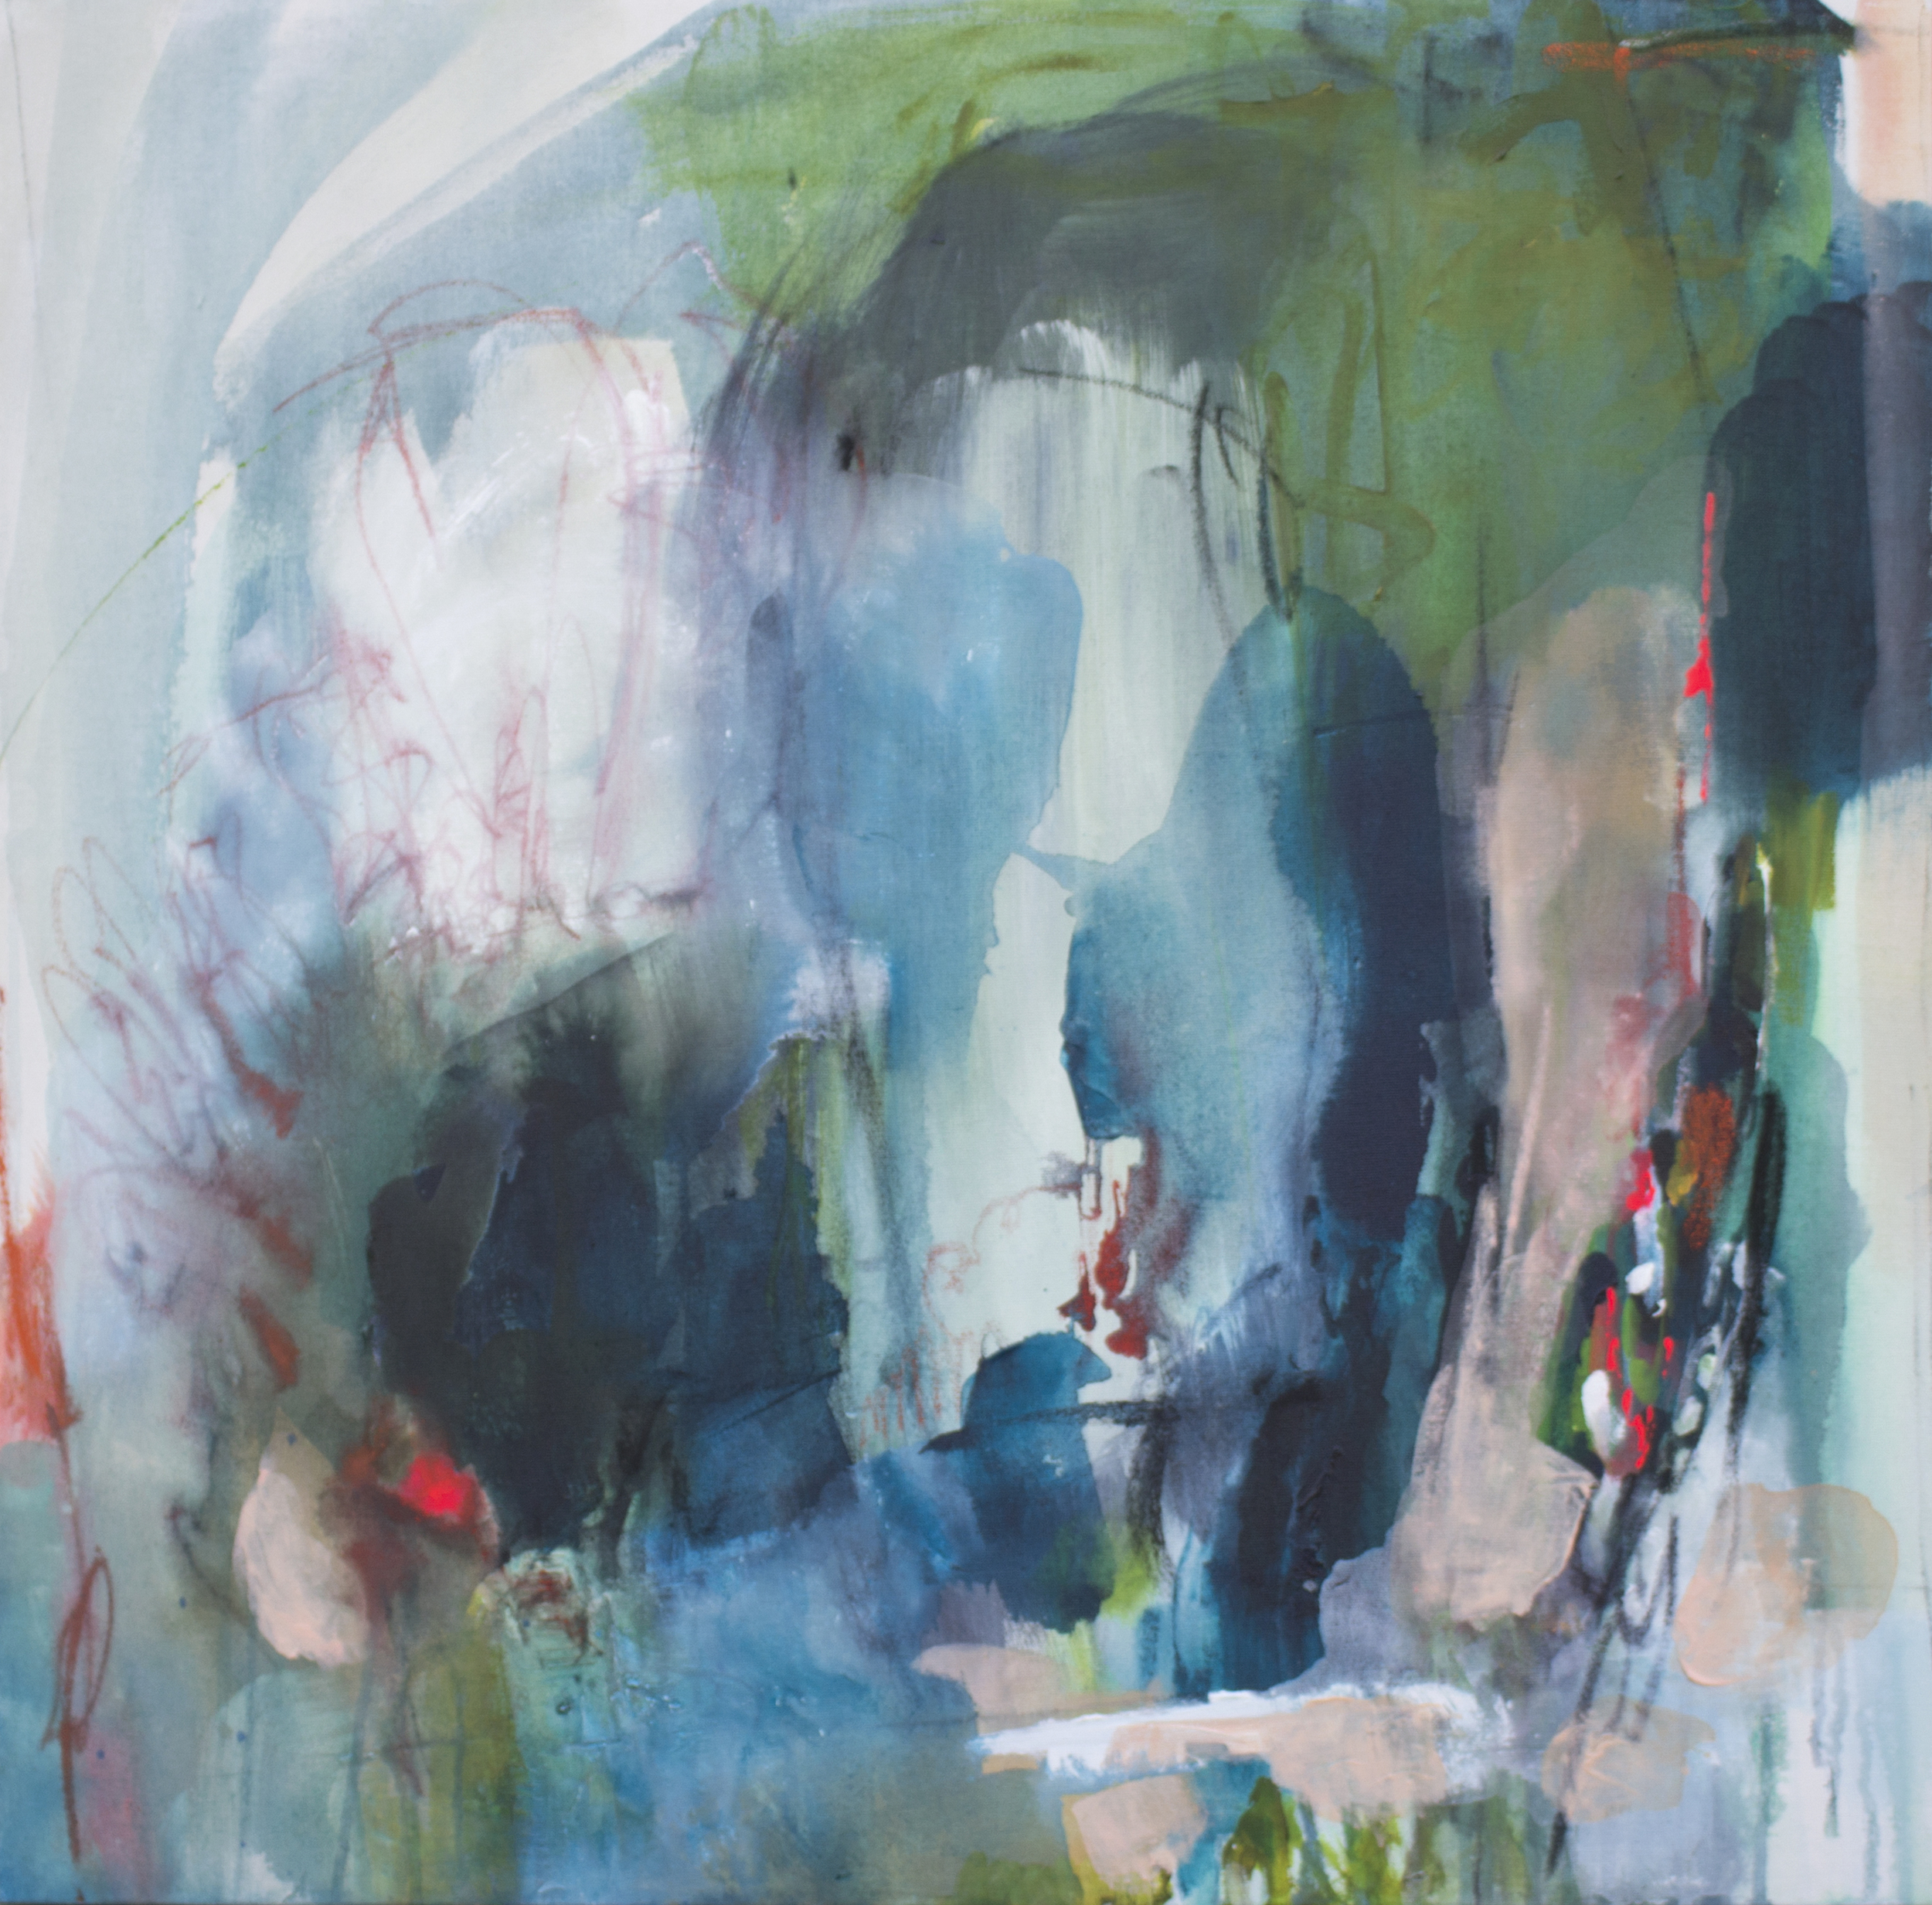 Expletive 27 in. x 29 in. acrylic, pastel, charcoal on canvas   sold